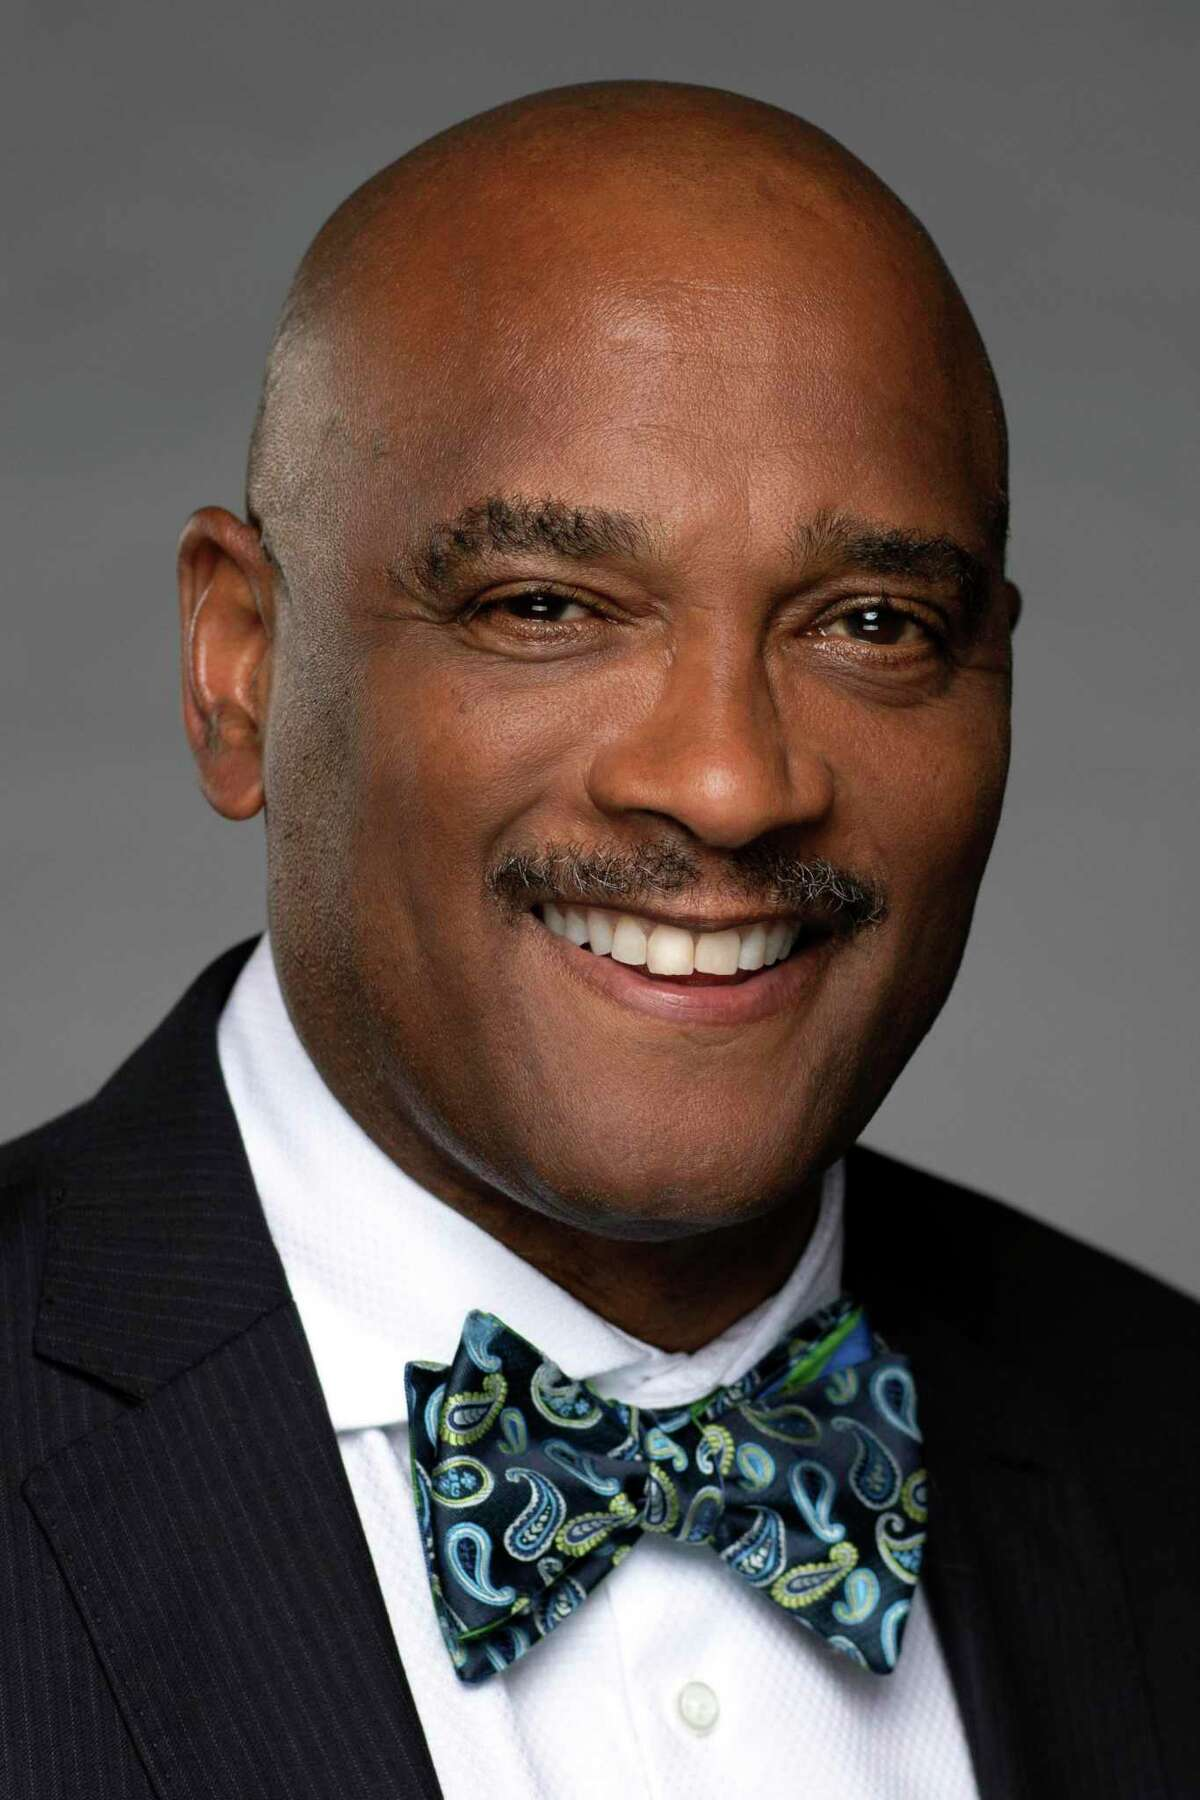 Fred McKinney, the Carlton Highsmith Chair for Innovation and Entrepreneurship and director of the People's United Center for Innovation & Entrepreneurship at Quinnipiac University